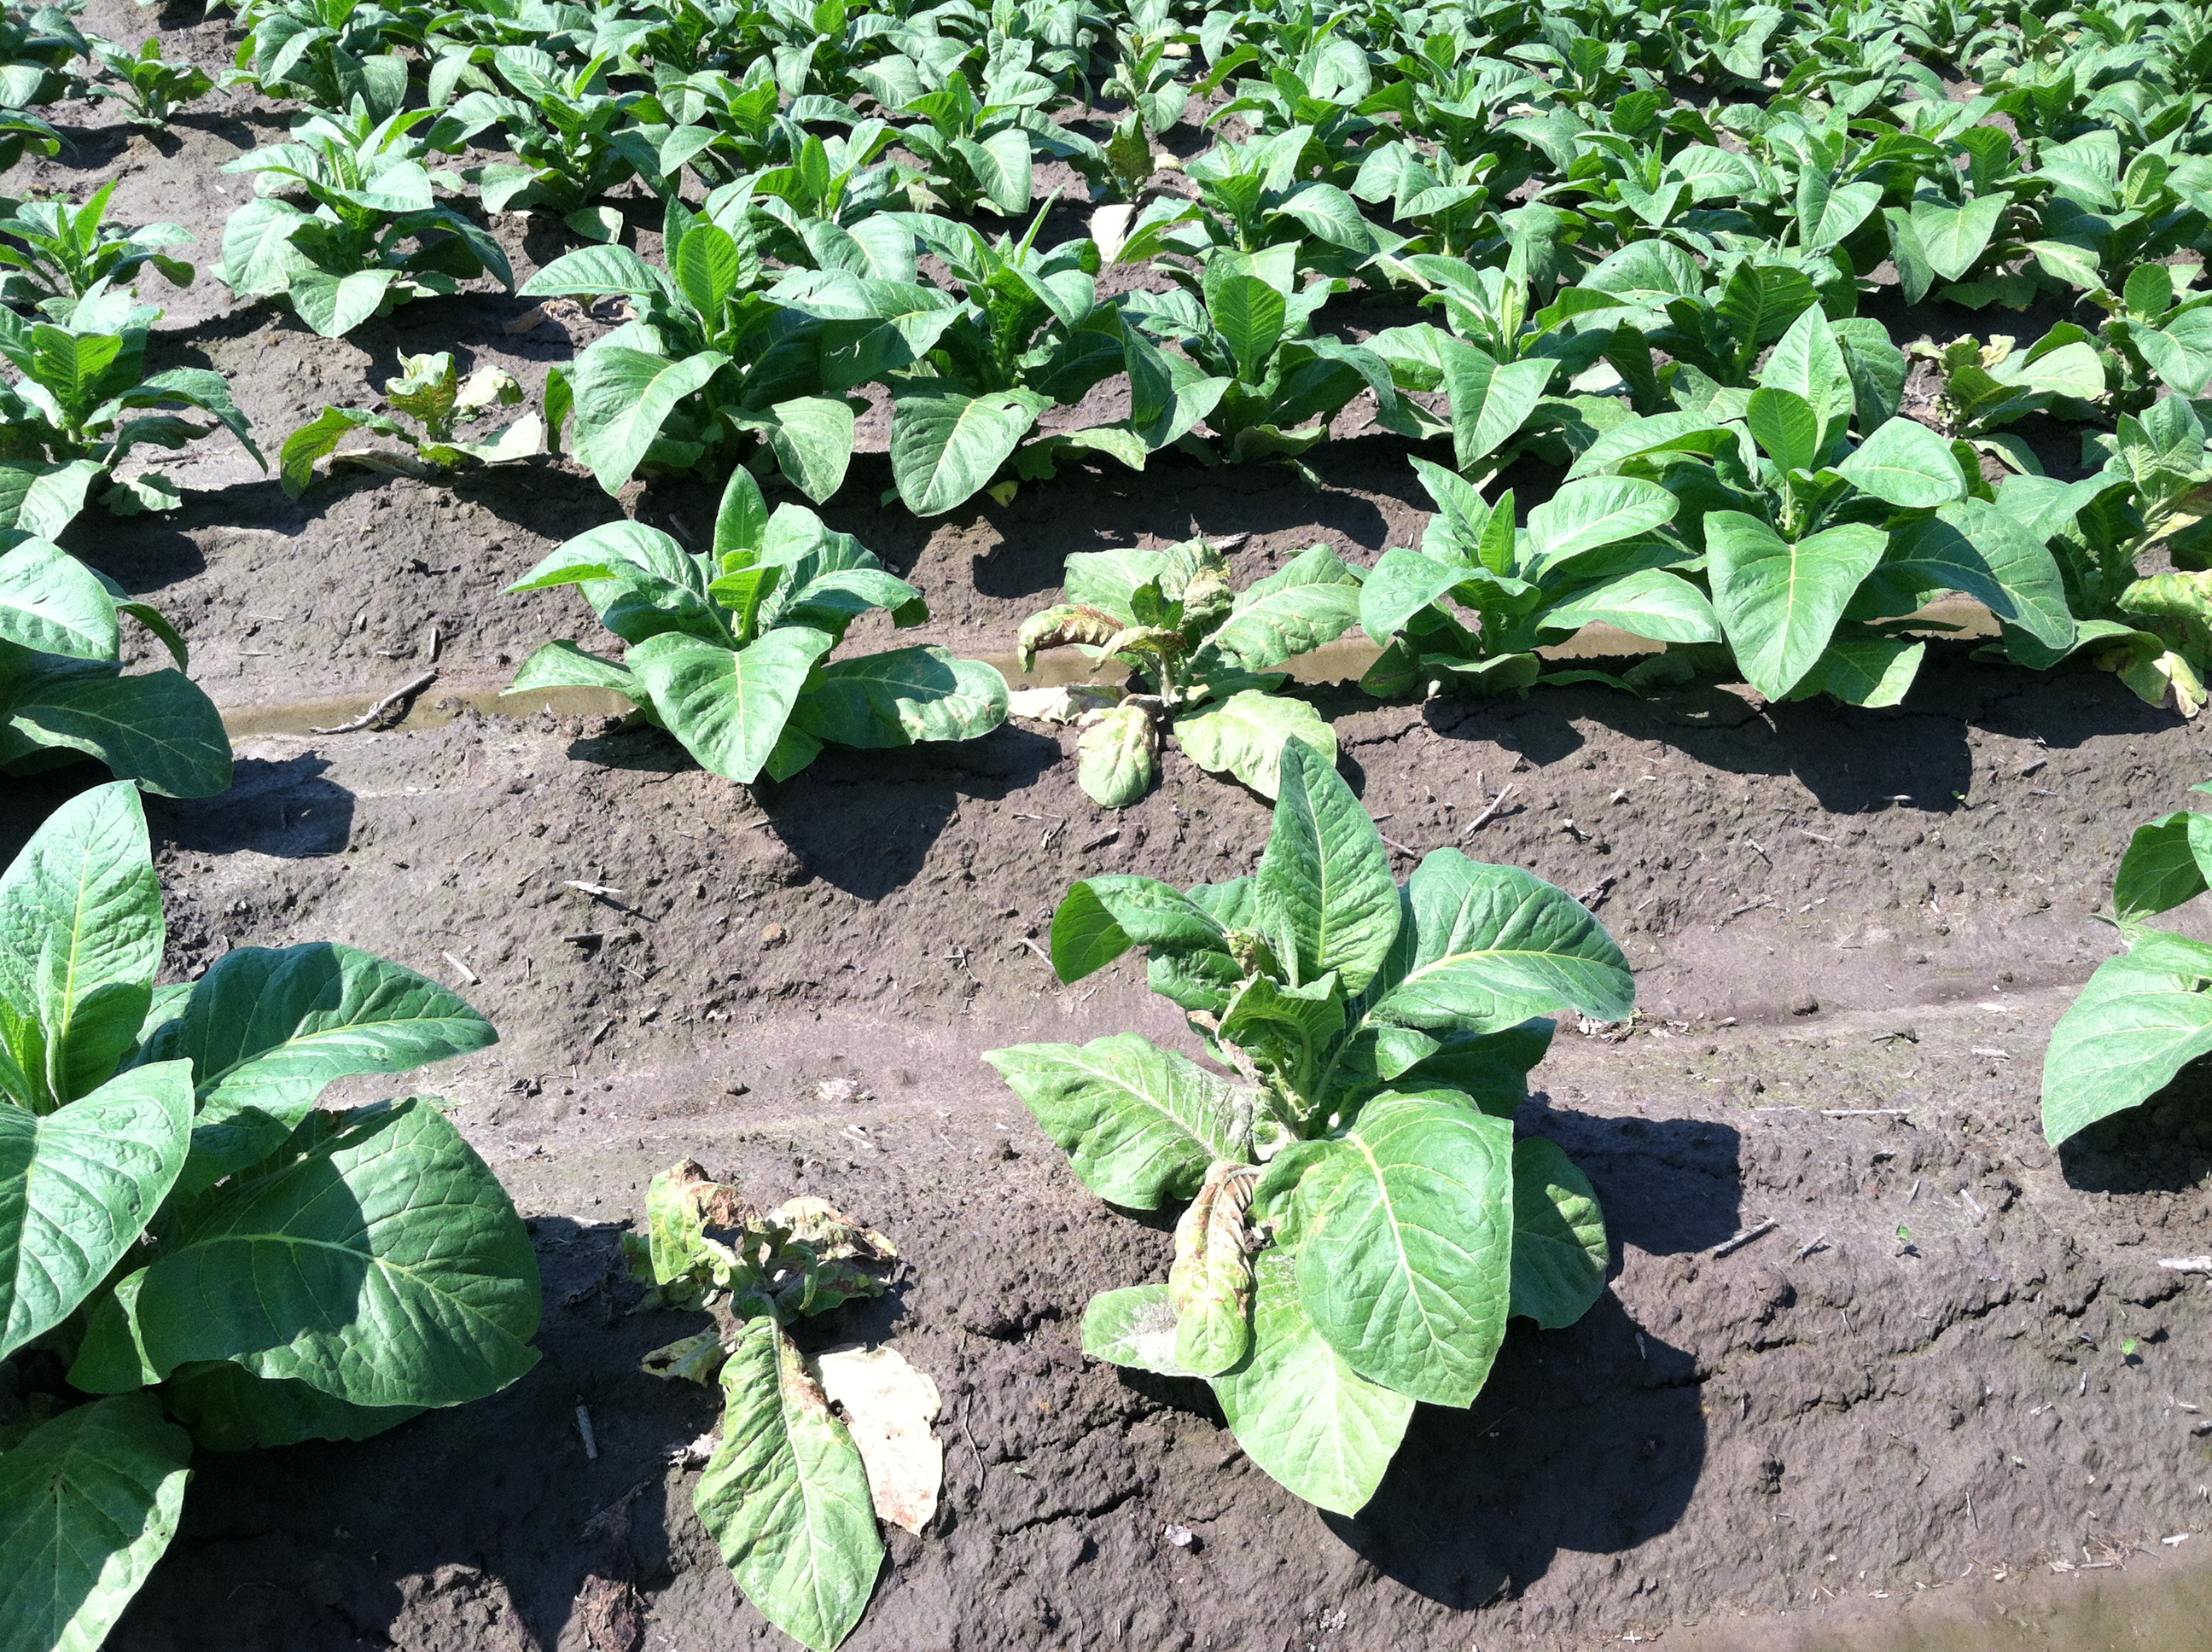 Tomato Spotted Wilt Virus on Tobacco